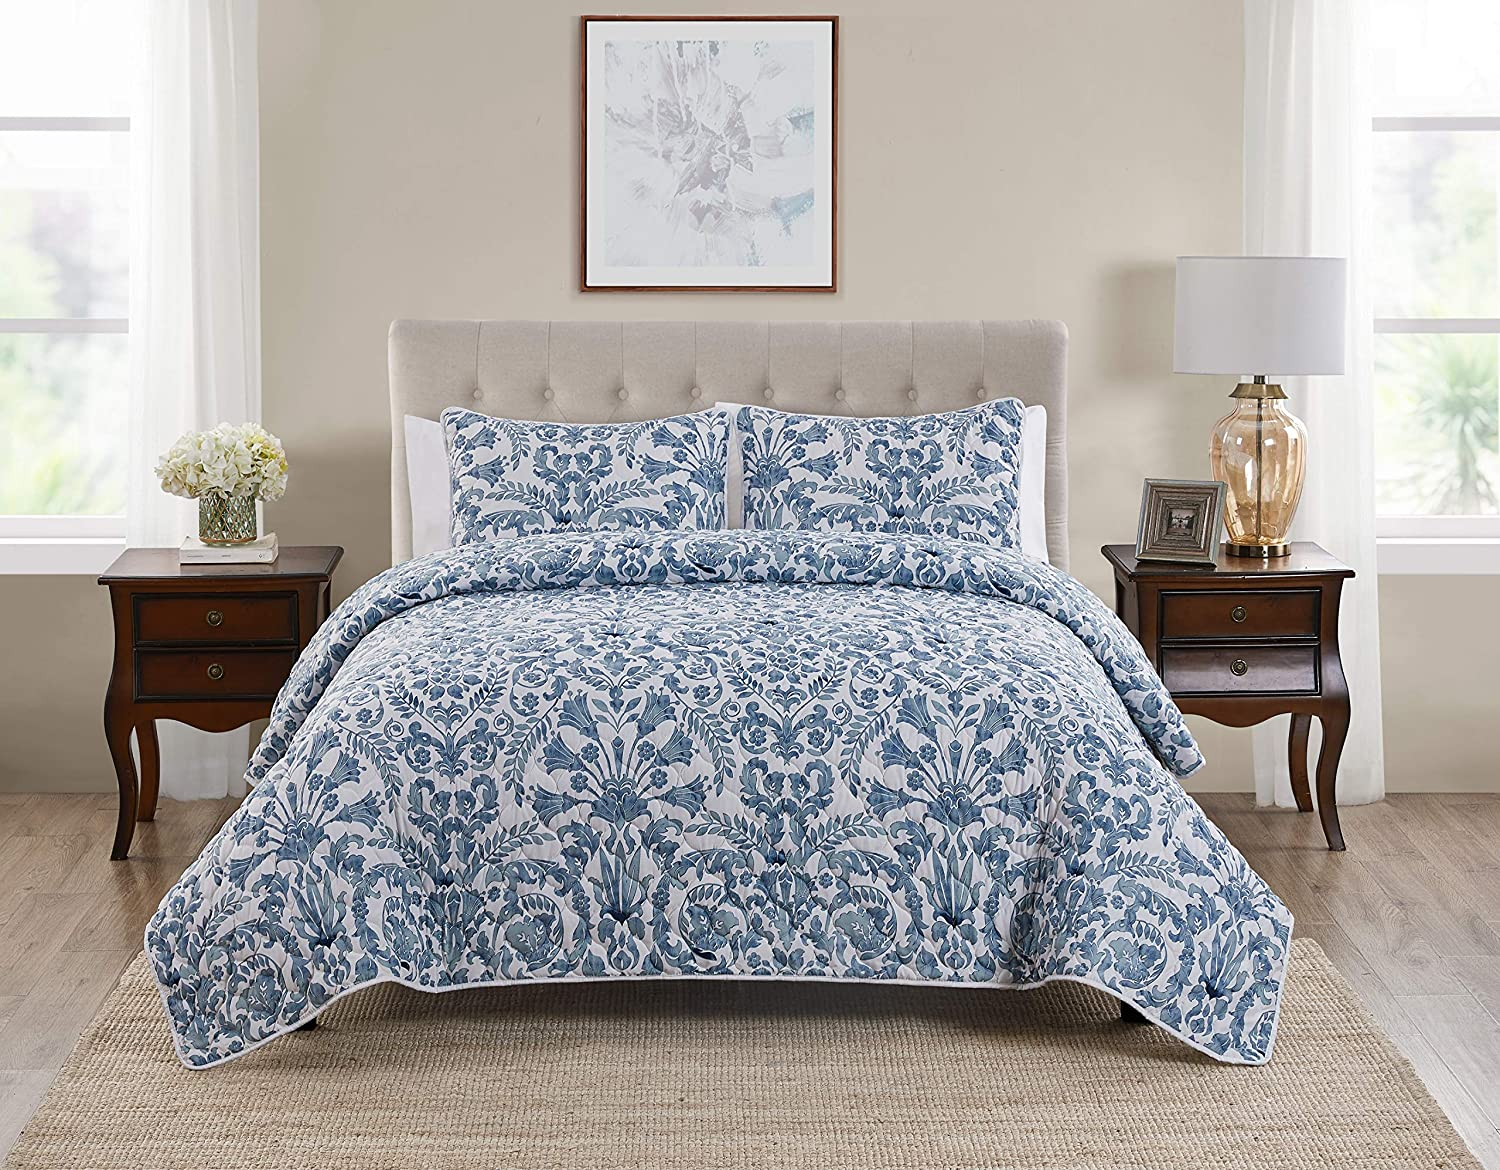 Tahari Home   Montreau Bedding Collection   Luxury Premium Ultra Soft Quilt Coverlet, Lightweight Comfortable 3 Piece Set, Floral Print Designed for Home Hotel Décor, King, Blue